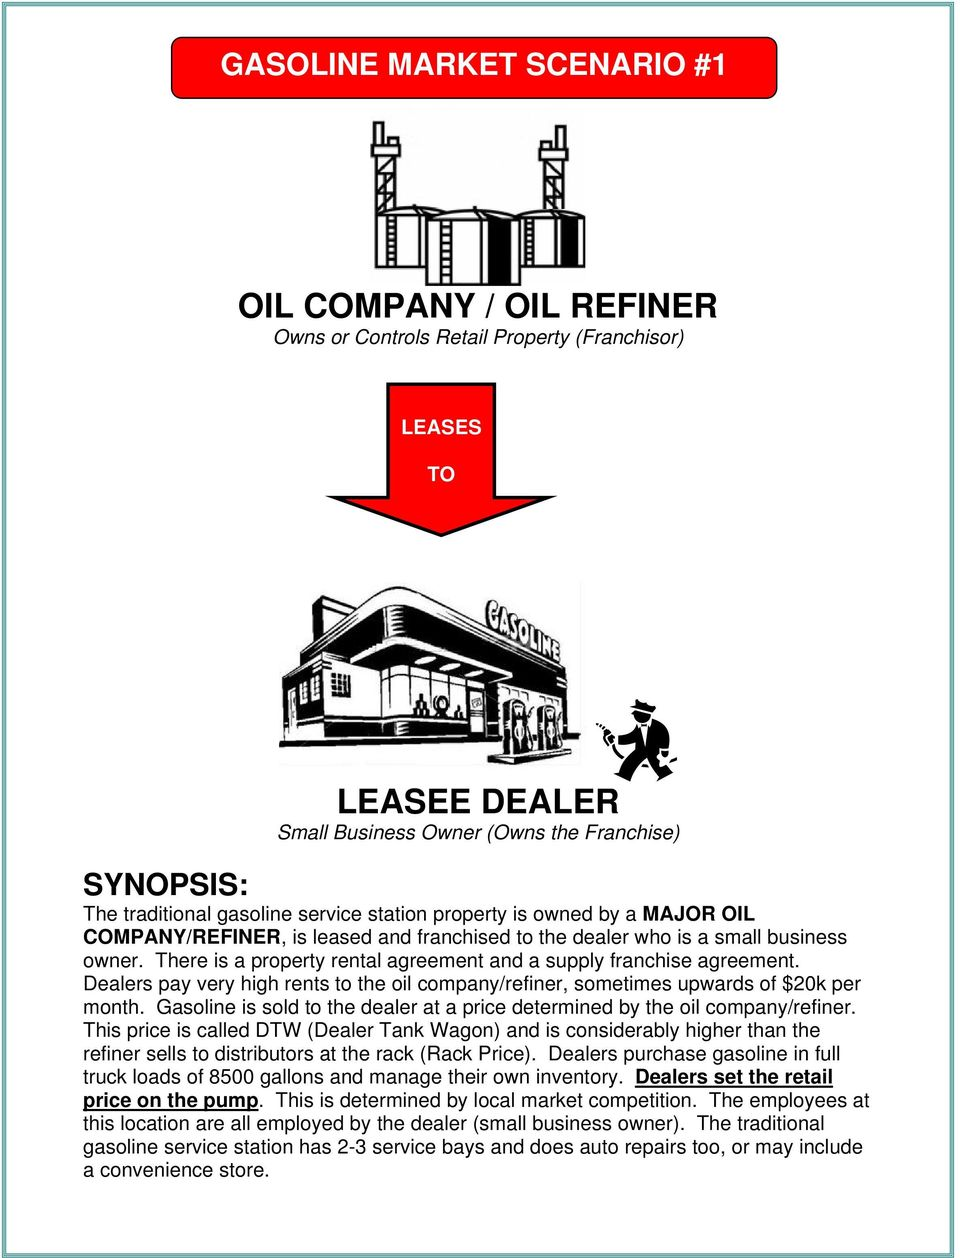 Dealers pay very high rents to the oil company/refiner, sometimes upwards of $20k per month. Gasoline is sold to the dealer at a price determined by the oil company/refiner.